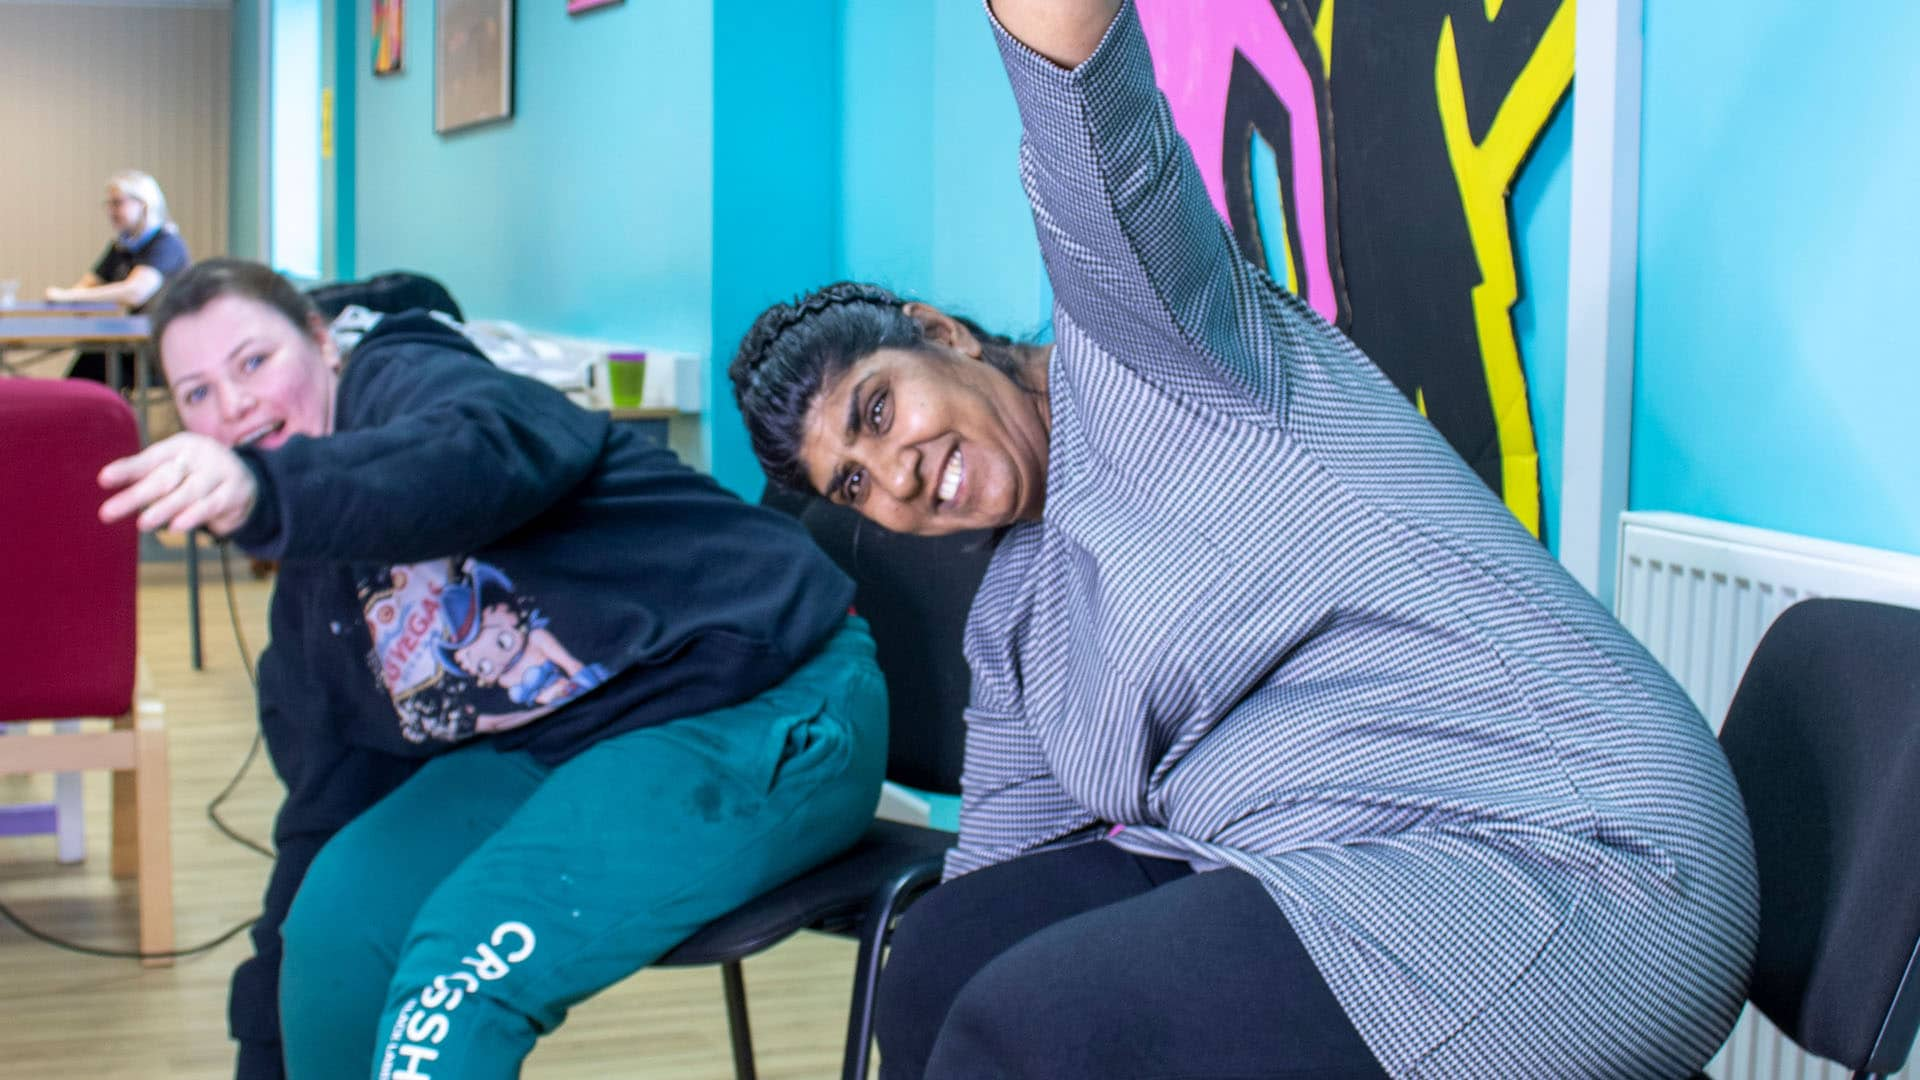 Two service users sat in chairs doing stretches with big smiles on their faces